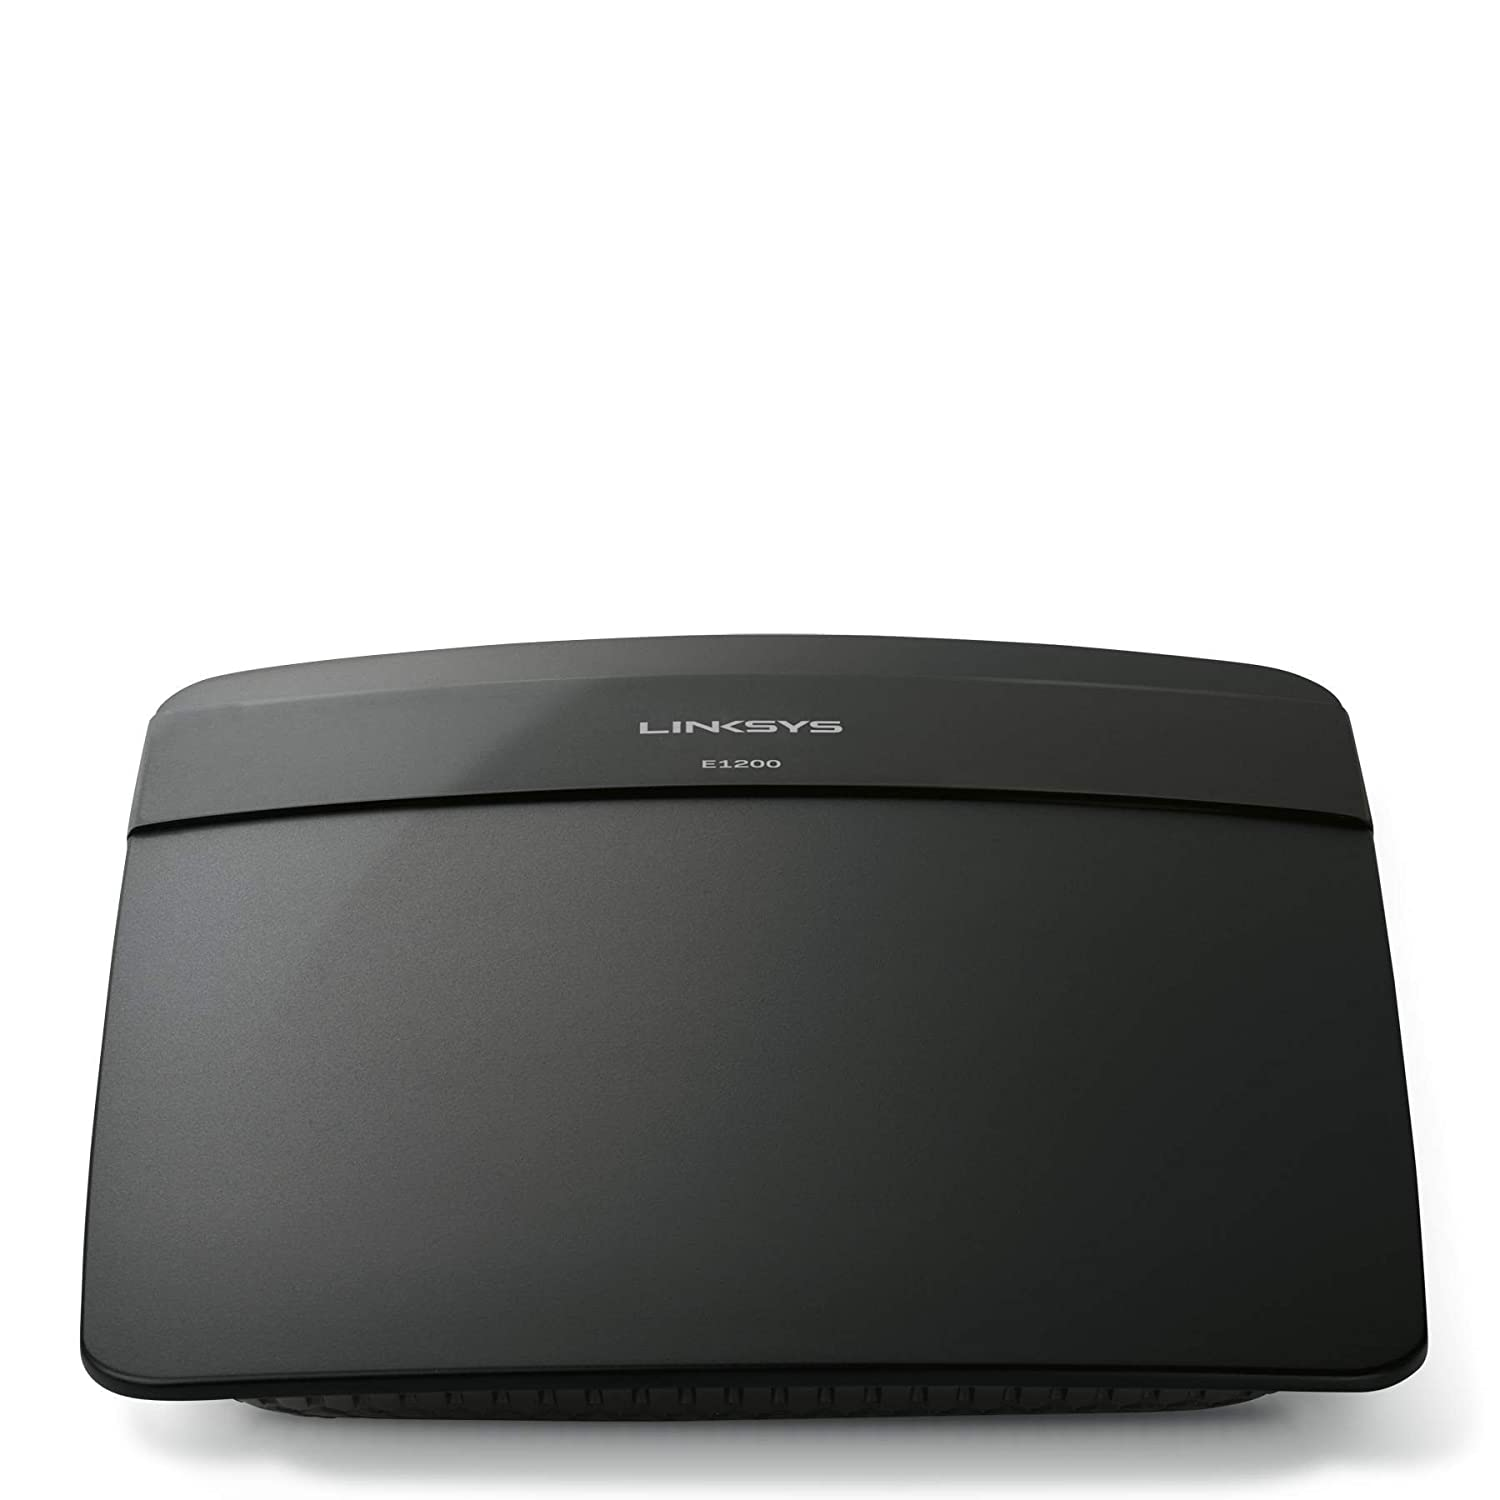 amazon com linksys n300 wi fi wireless router with linksys connect